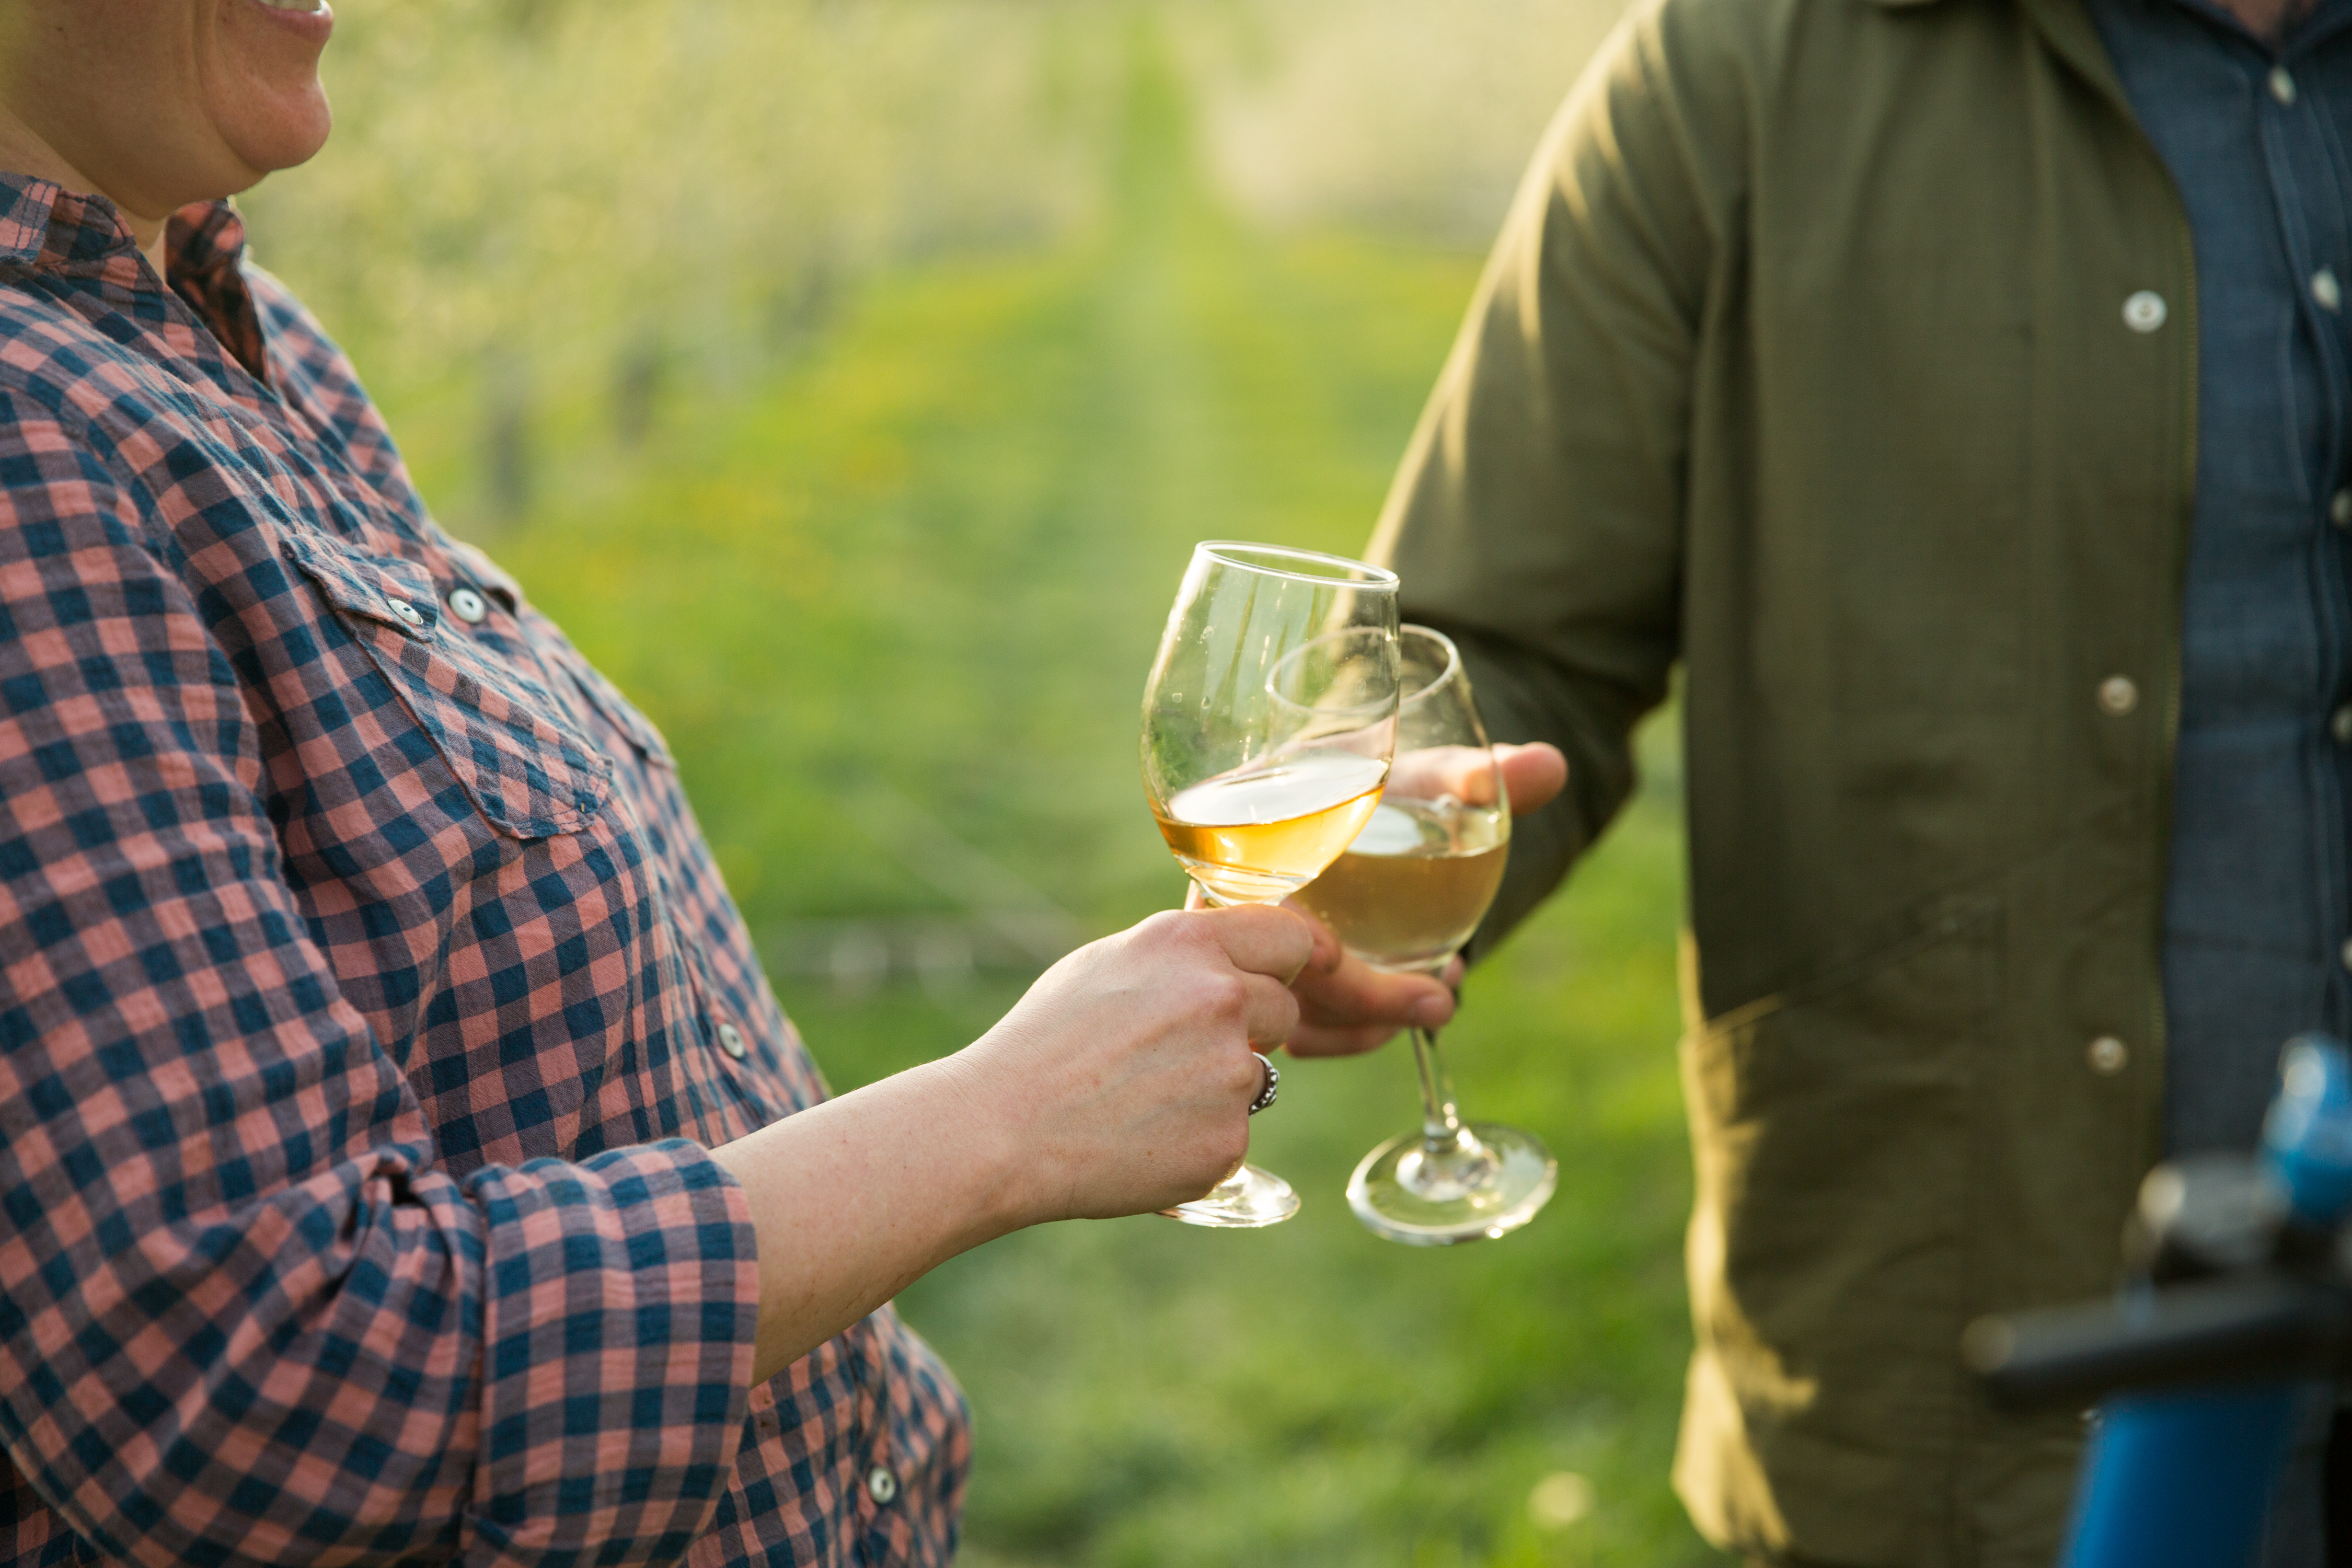 Upcoming Cider Week Champions Hudson Valley Cider Makers